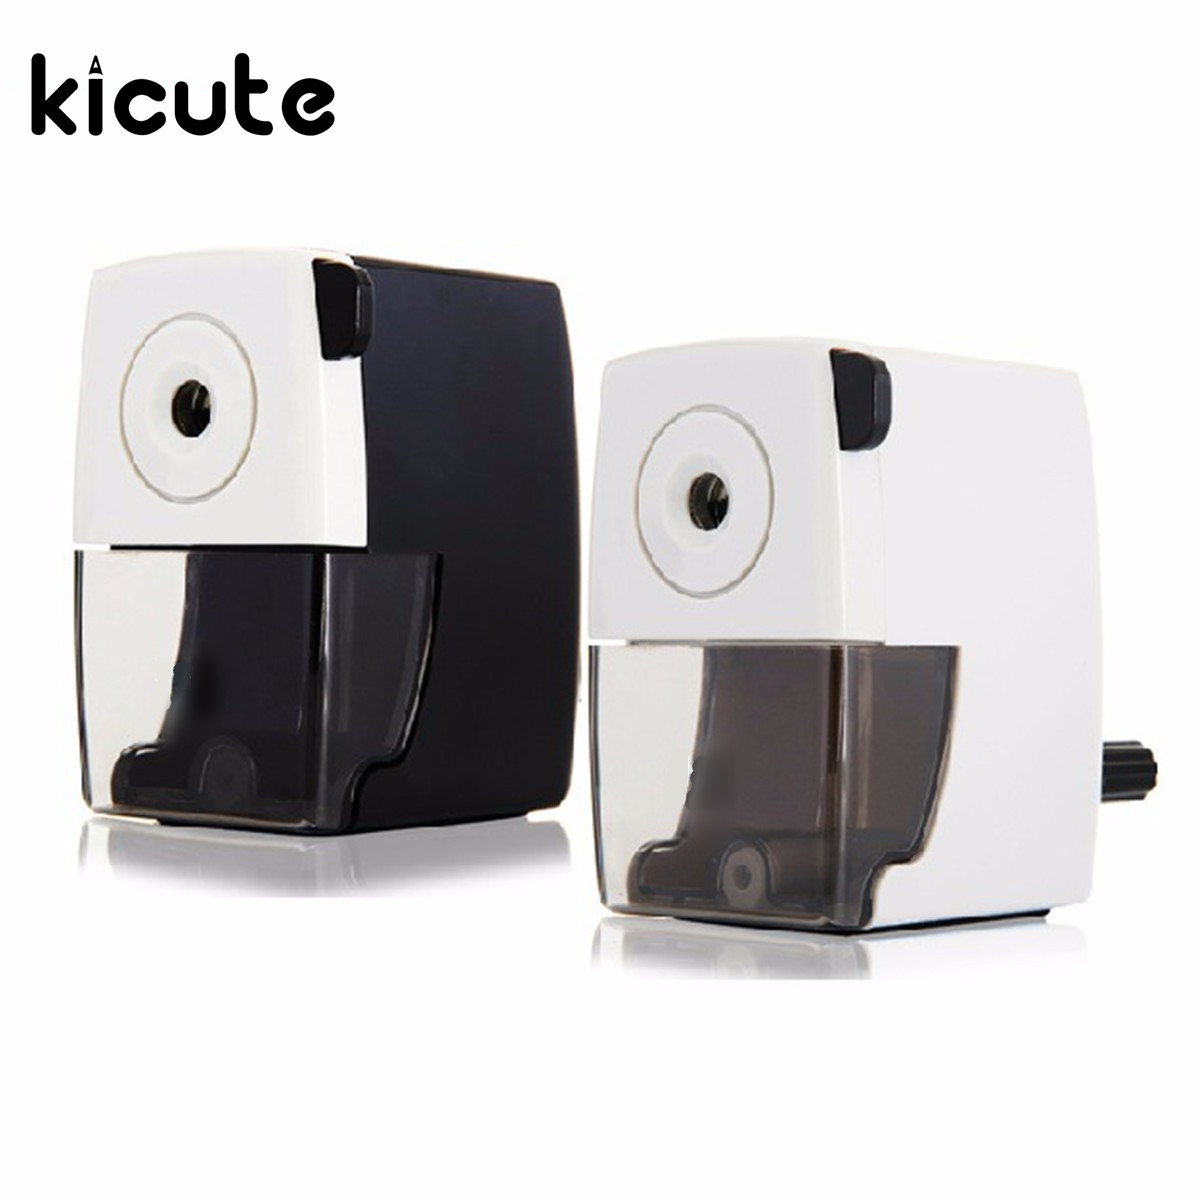 Kicute Manual Pencil Sharpening Mechanical Sharpener for Home Desktop Supplies Office School Stationery Color Randomly